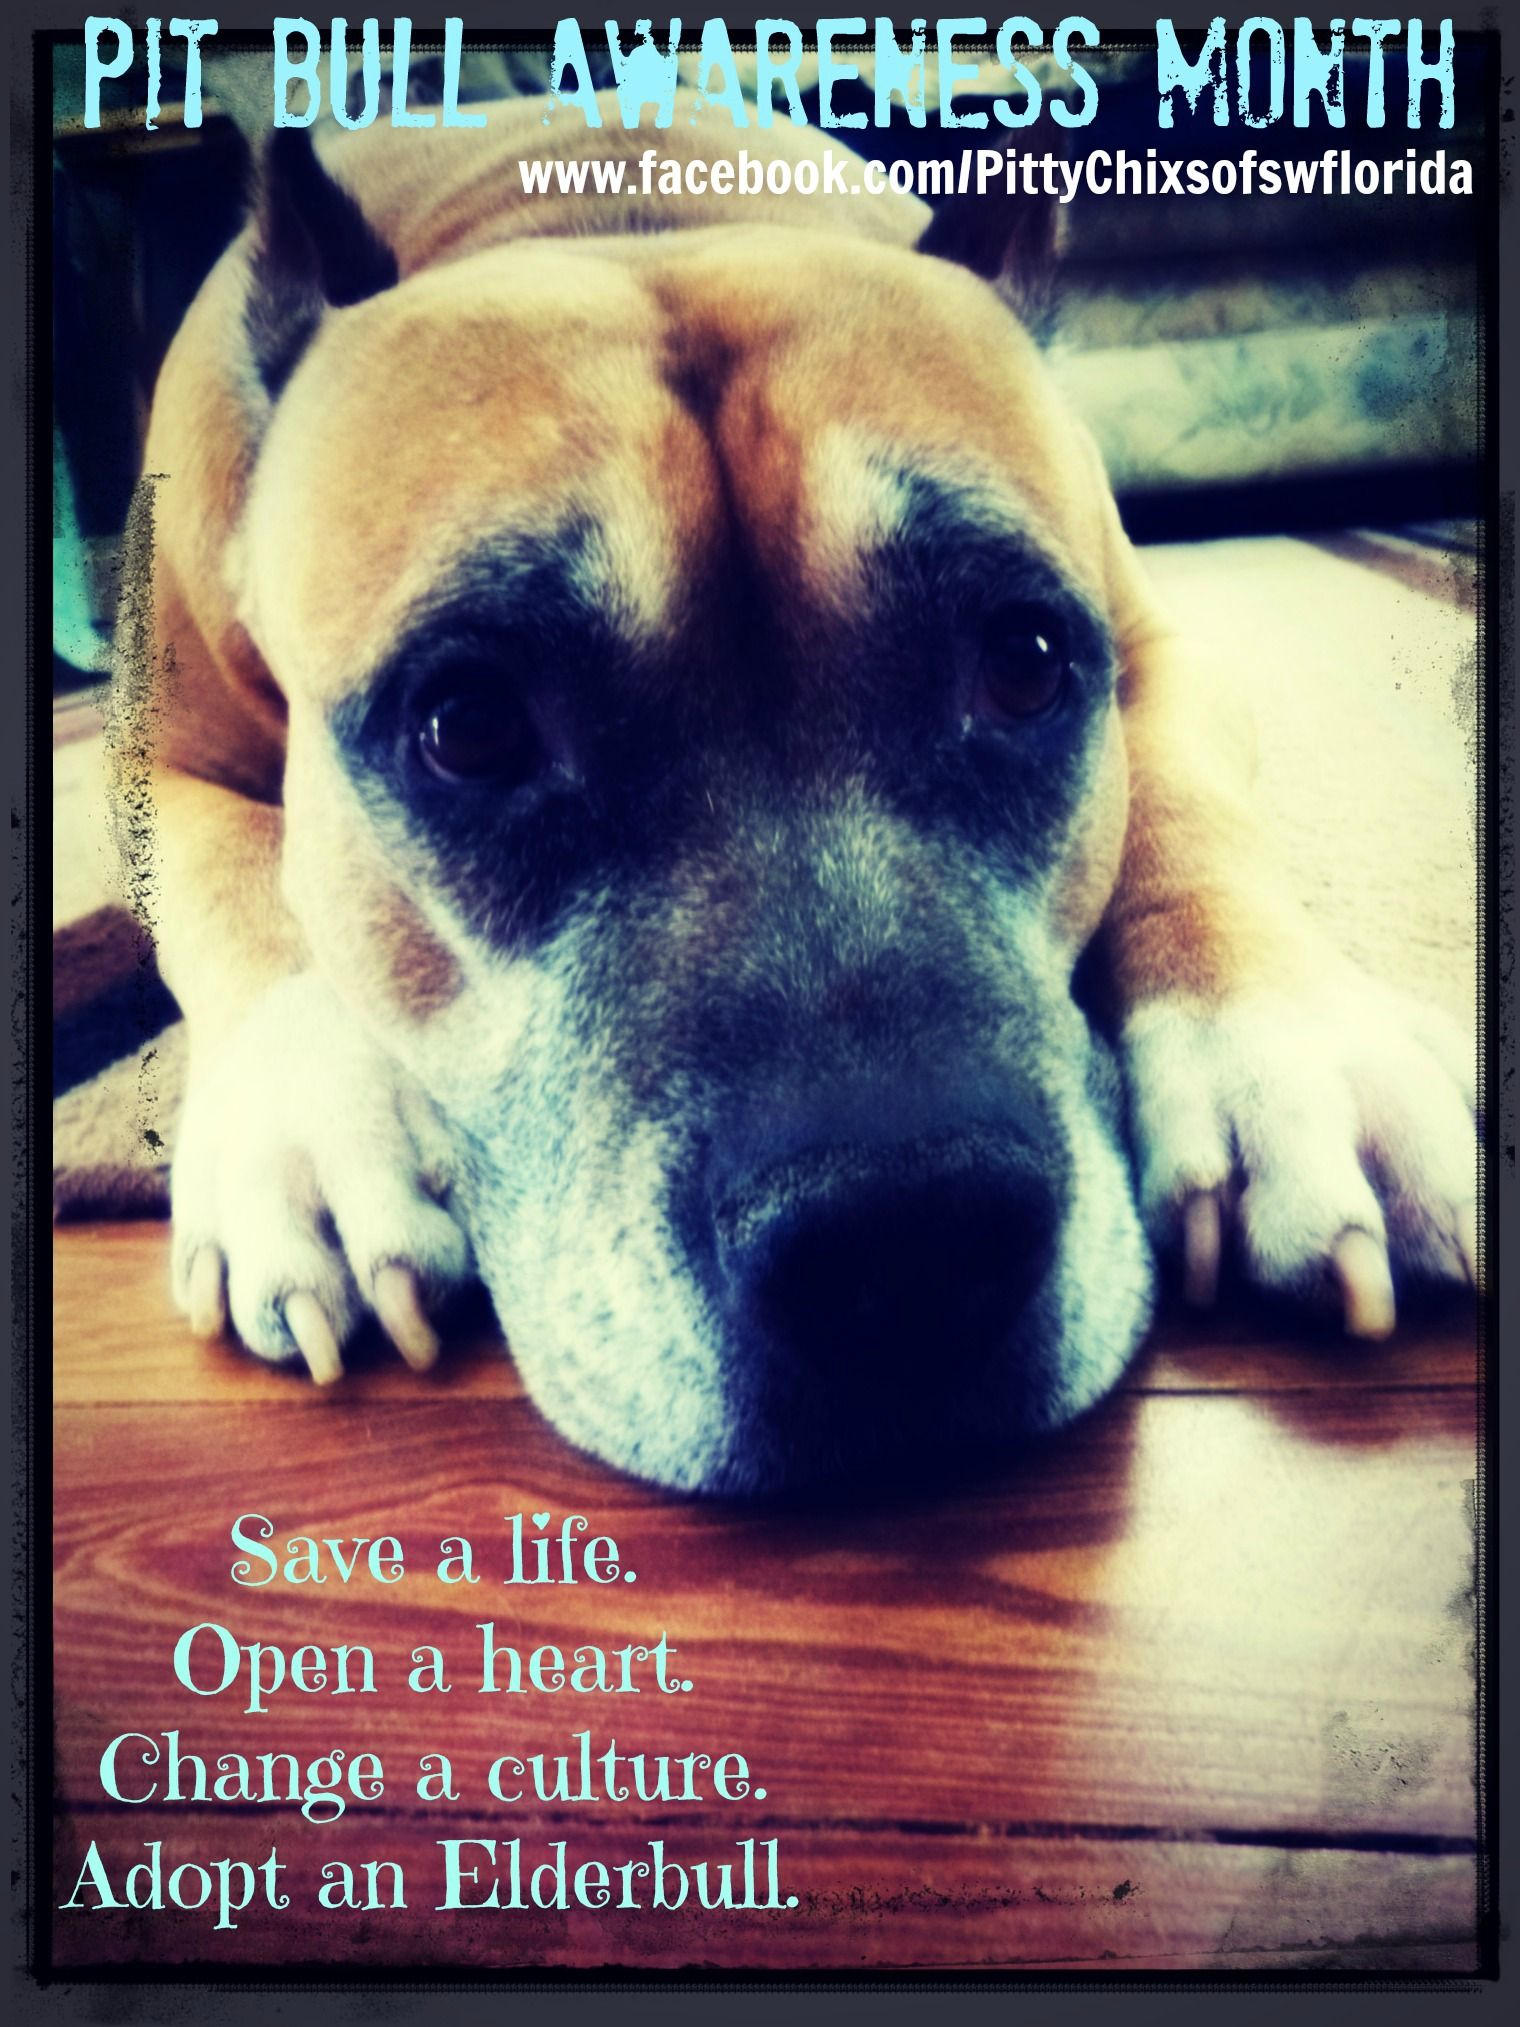 November Is Adopt A Senior Dog Month And There S Still One Week Left To Make A Difference For Older Pups Share A Pitbulls Adoption Animal Advocacy